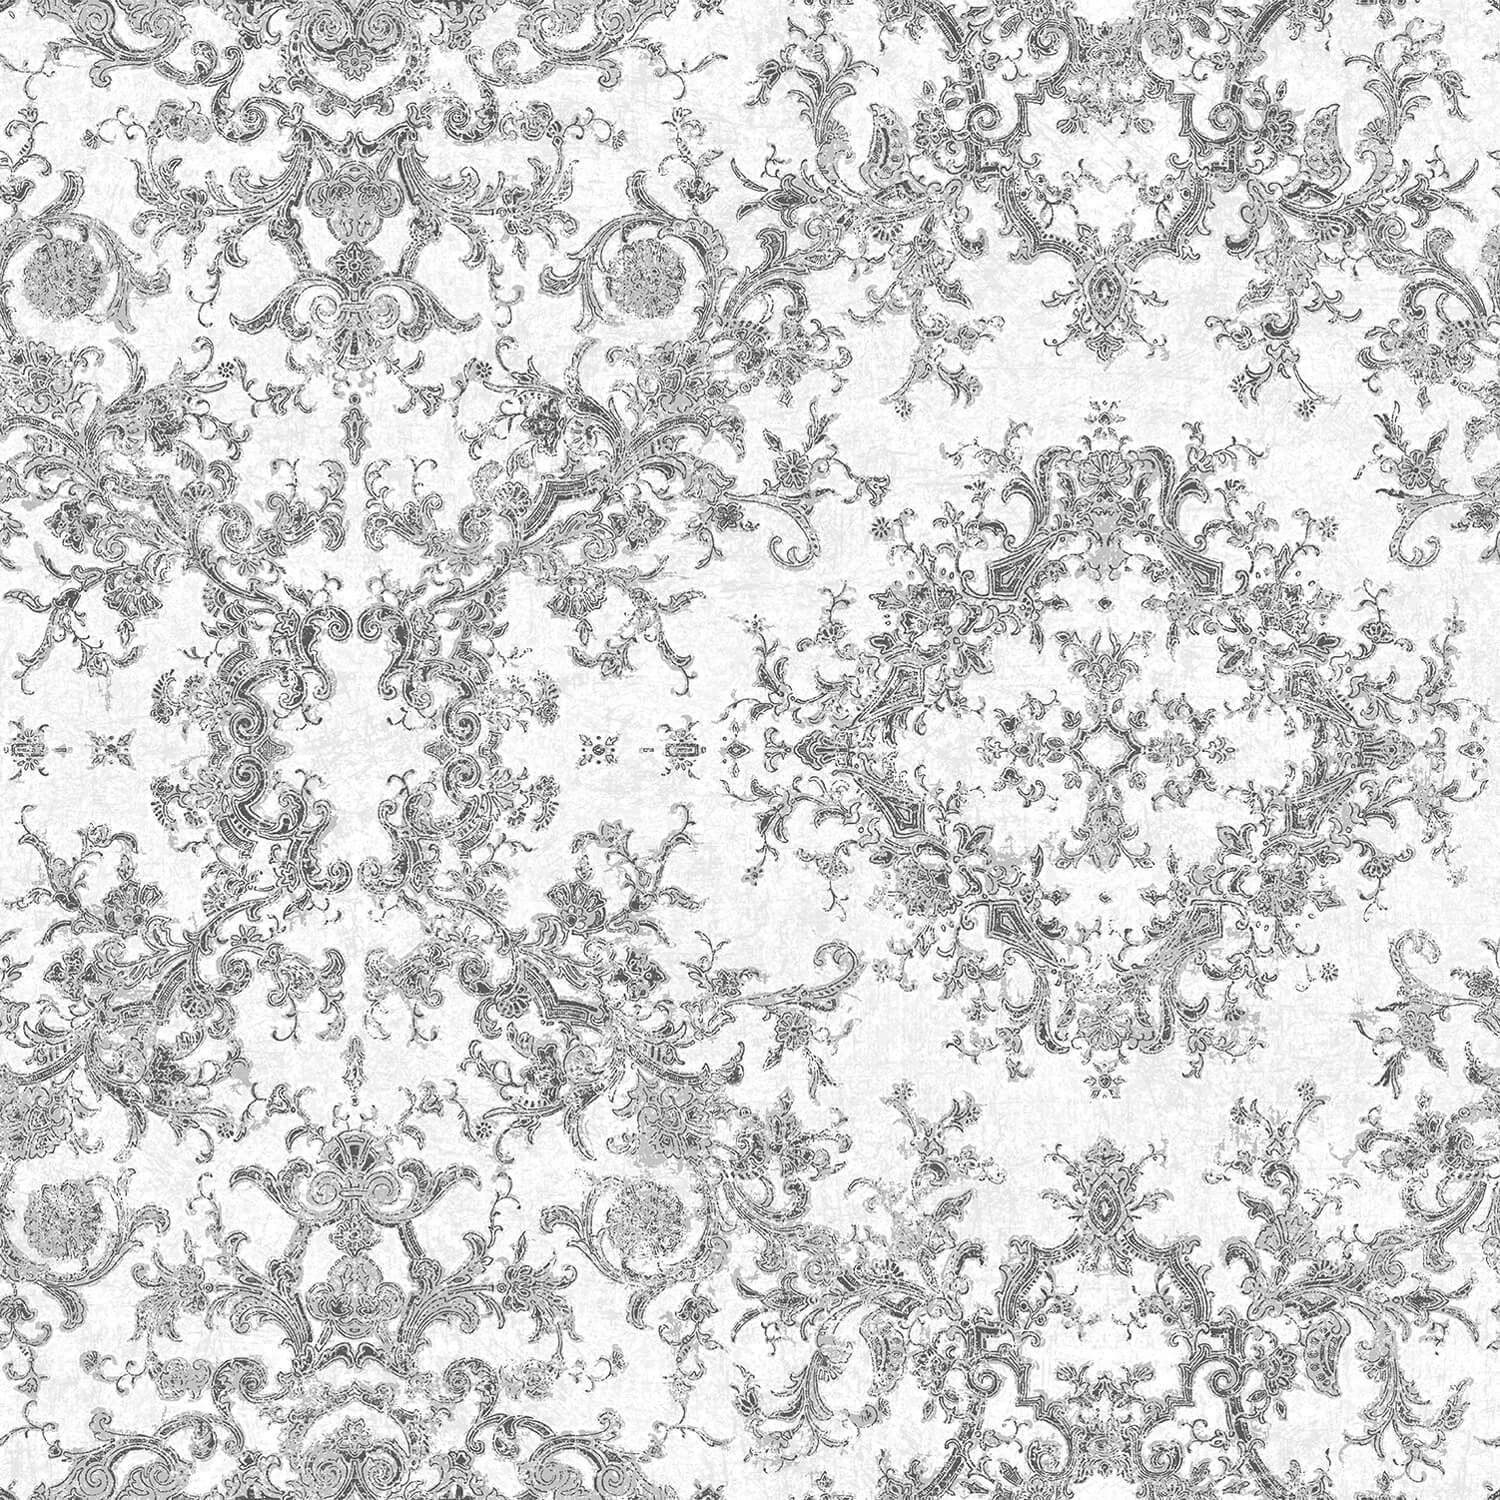 Galerie Contemporary Damask Wallpaper, Grey/ Silver